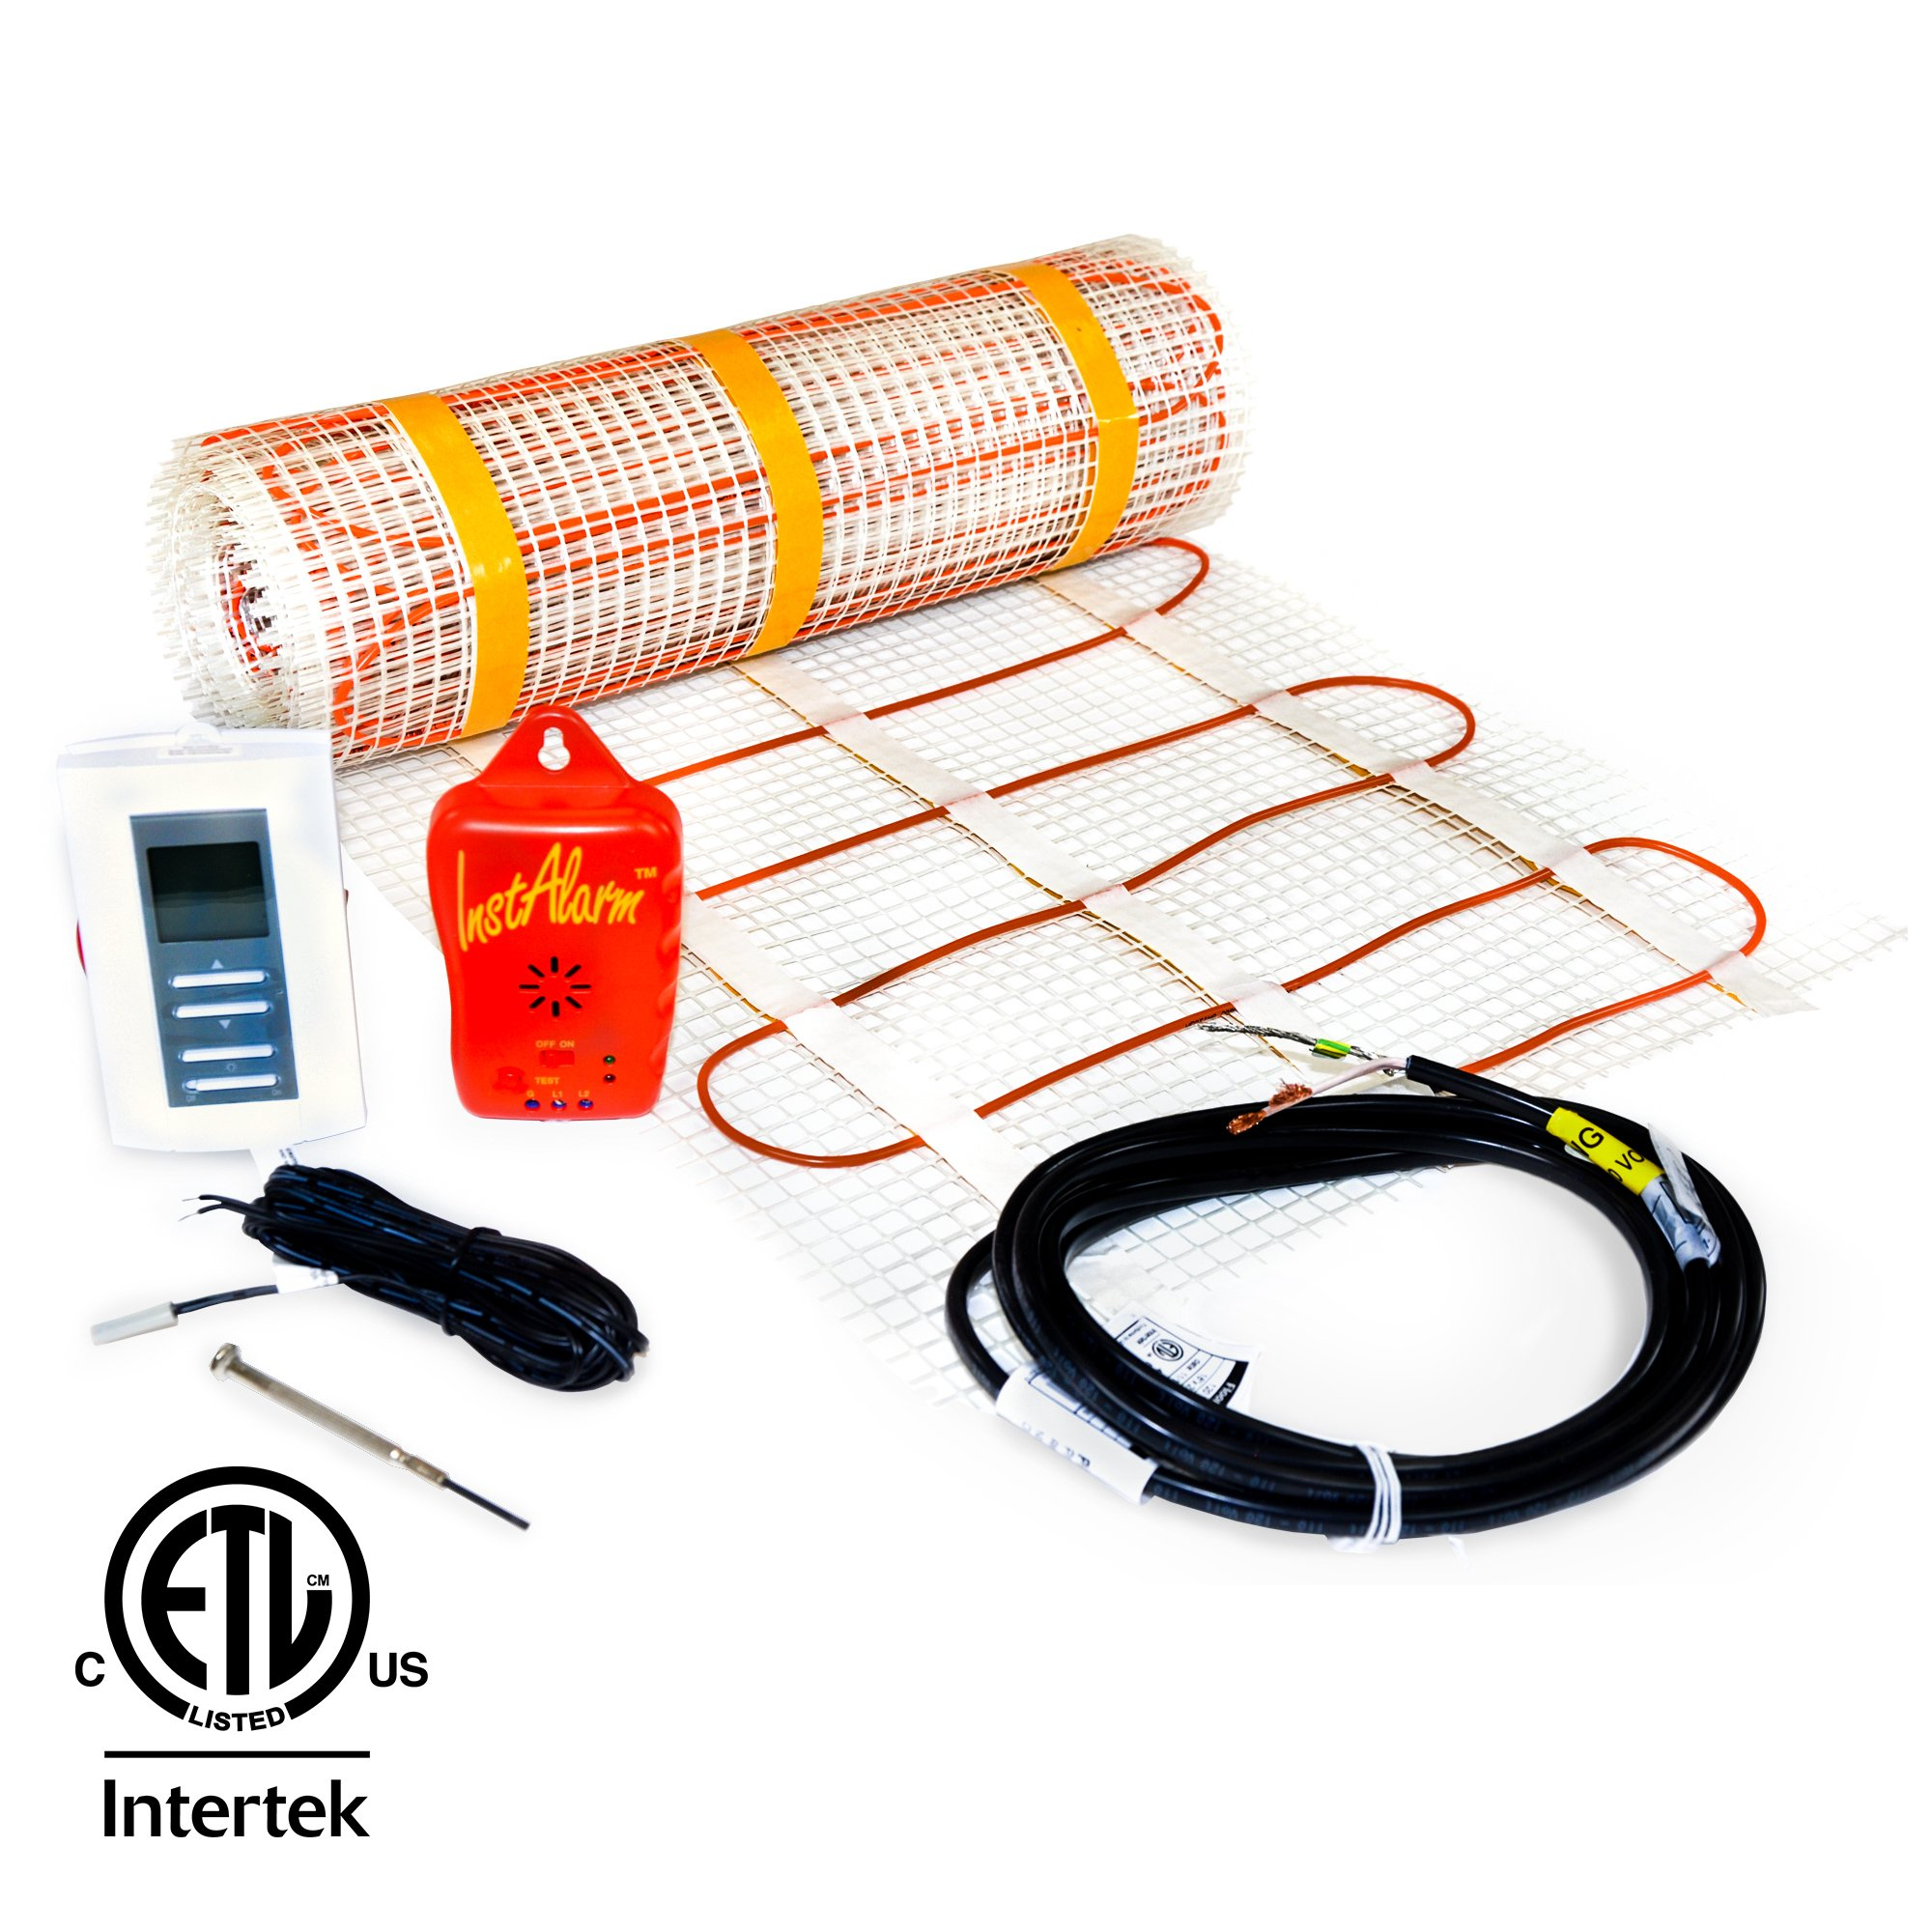 7 sq.ft. 120-Volt. Ceramic & Stone Tile Electric Floor Heating Kit w/Honeywell Floor Thermostat and Installation Alarm, (4.5 ft. x 1.5 ft.) - Other Sizes Available